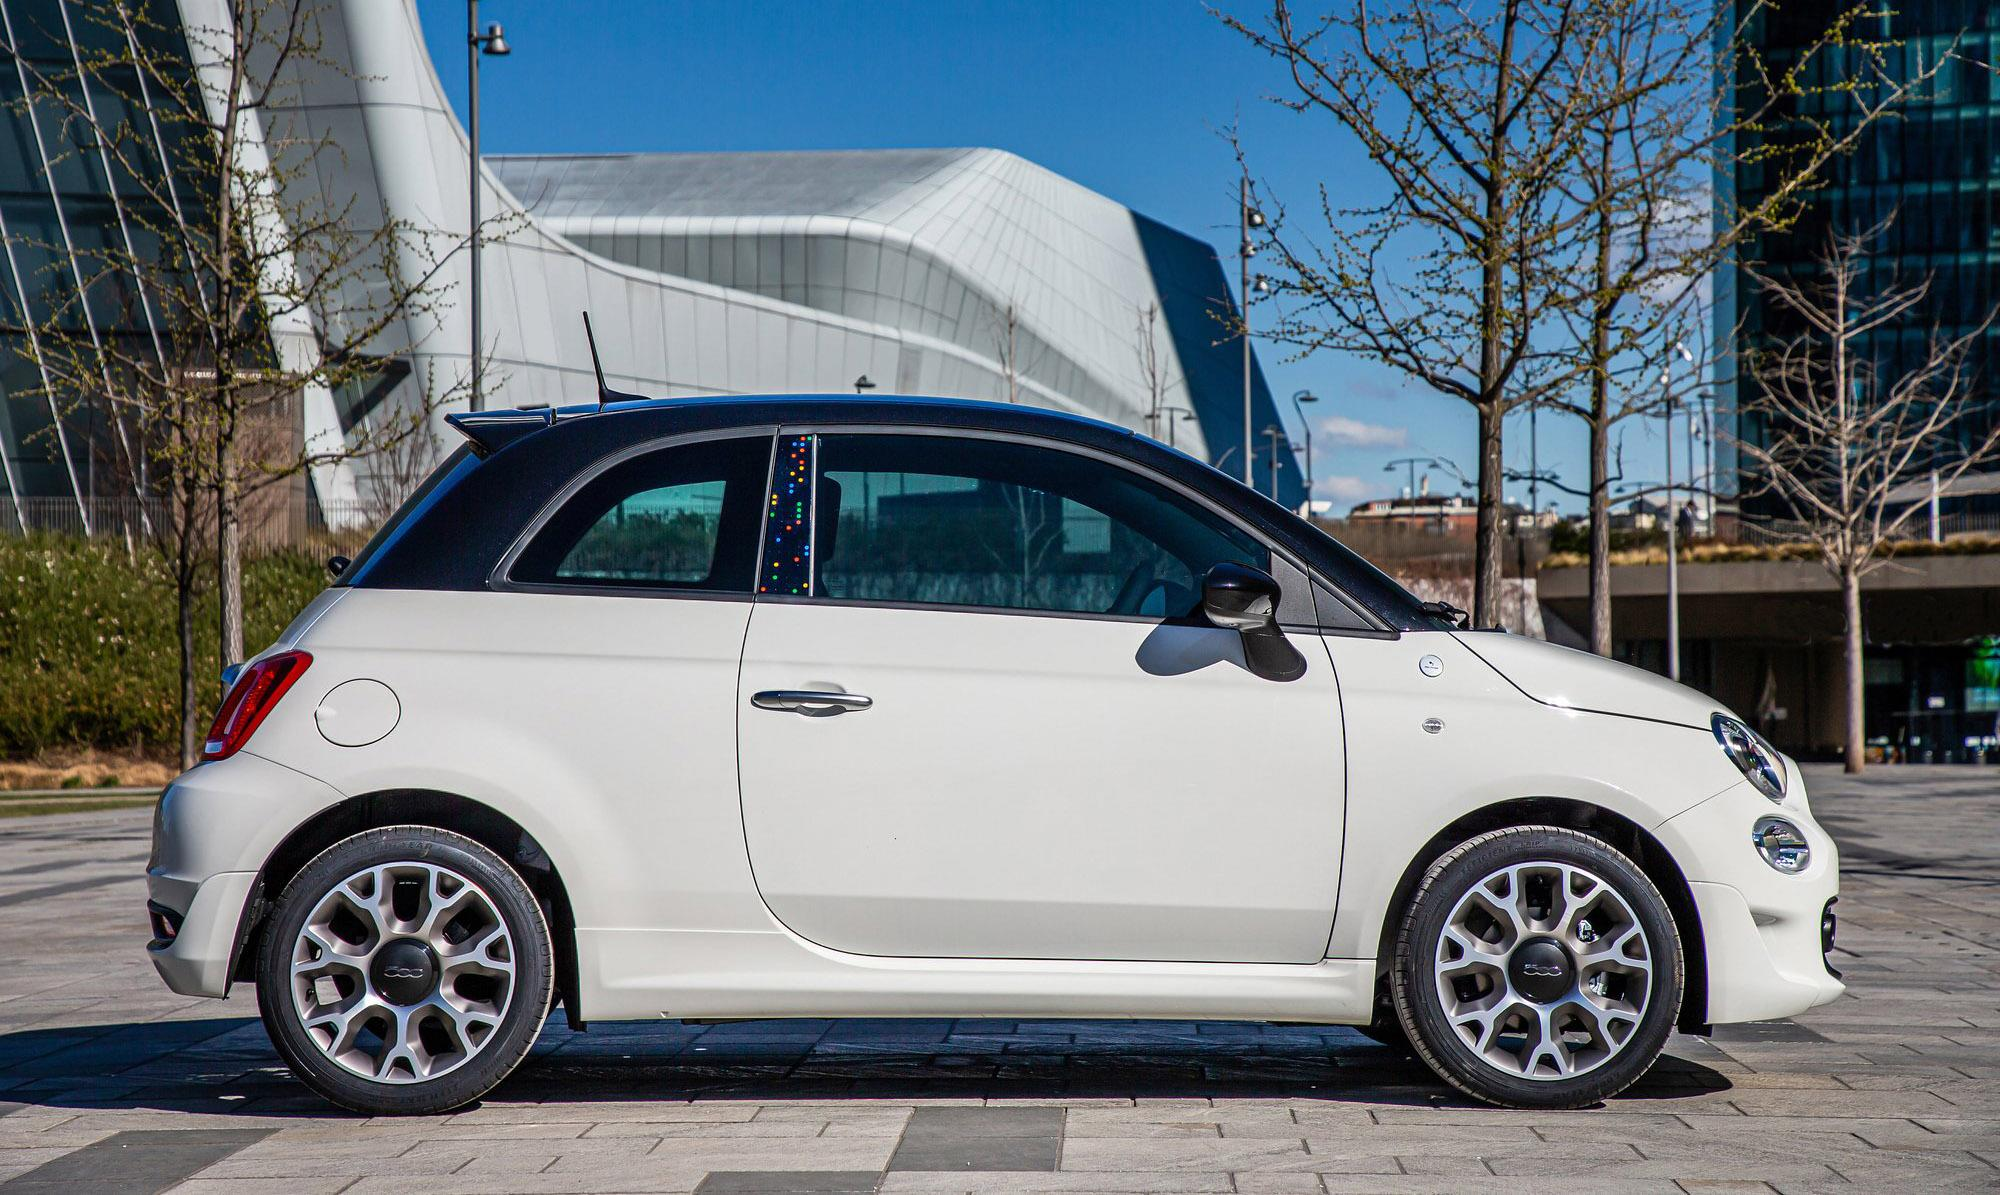 Fiat's 'Hey Google' special edition cars come with voice control